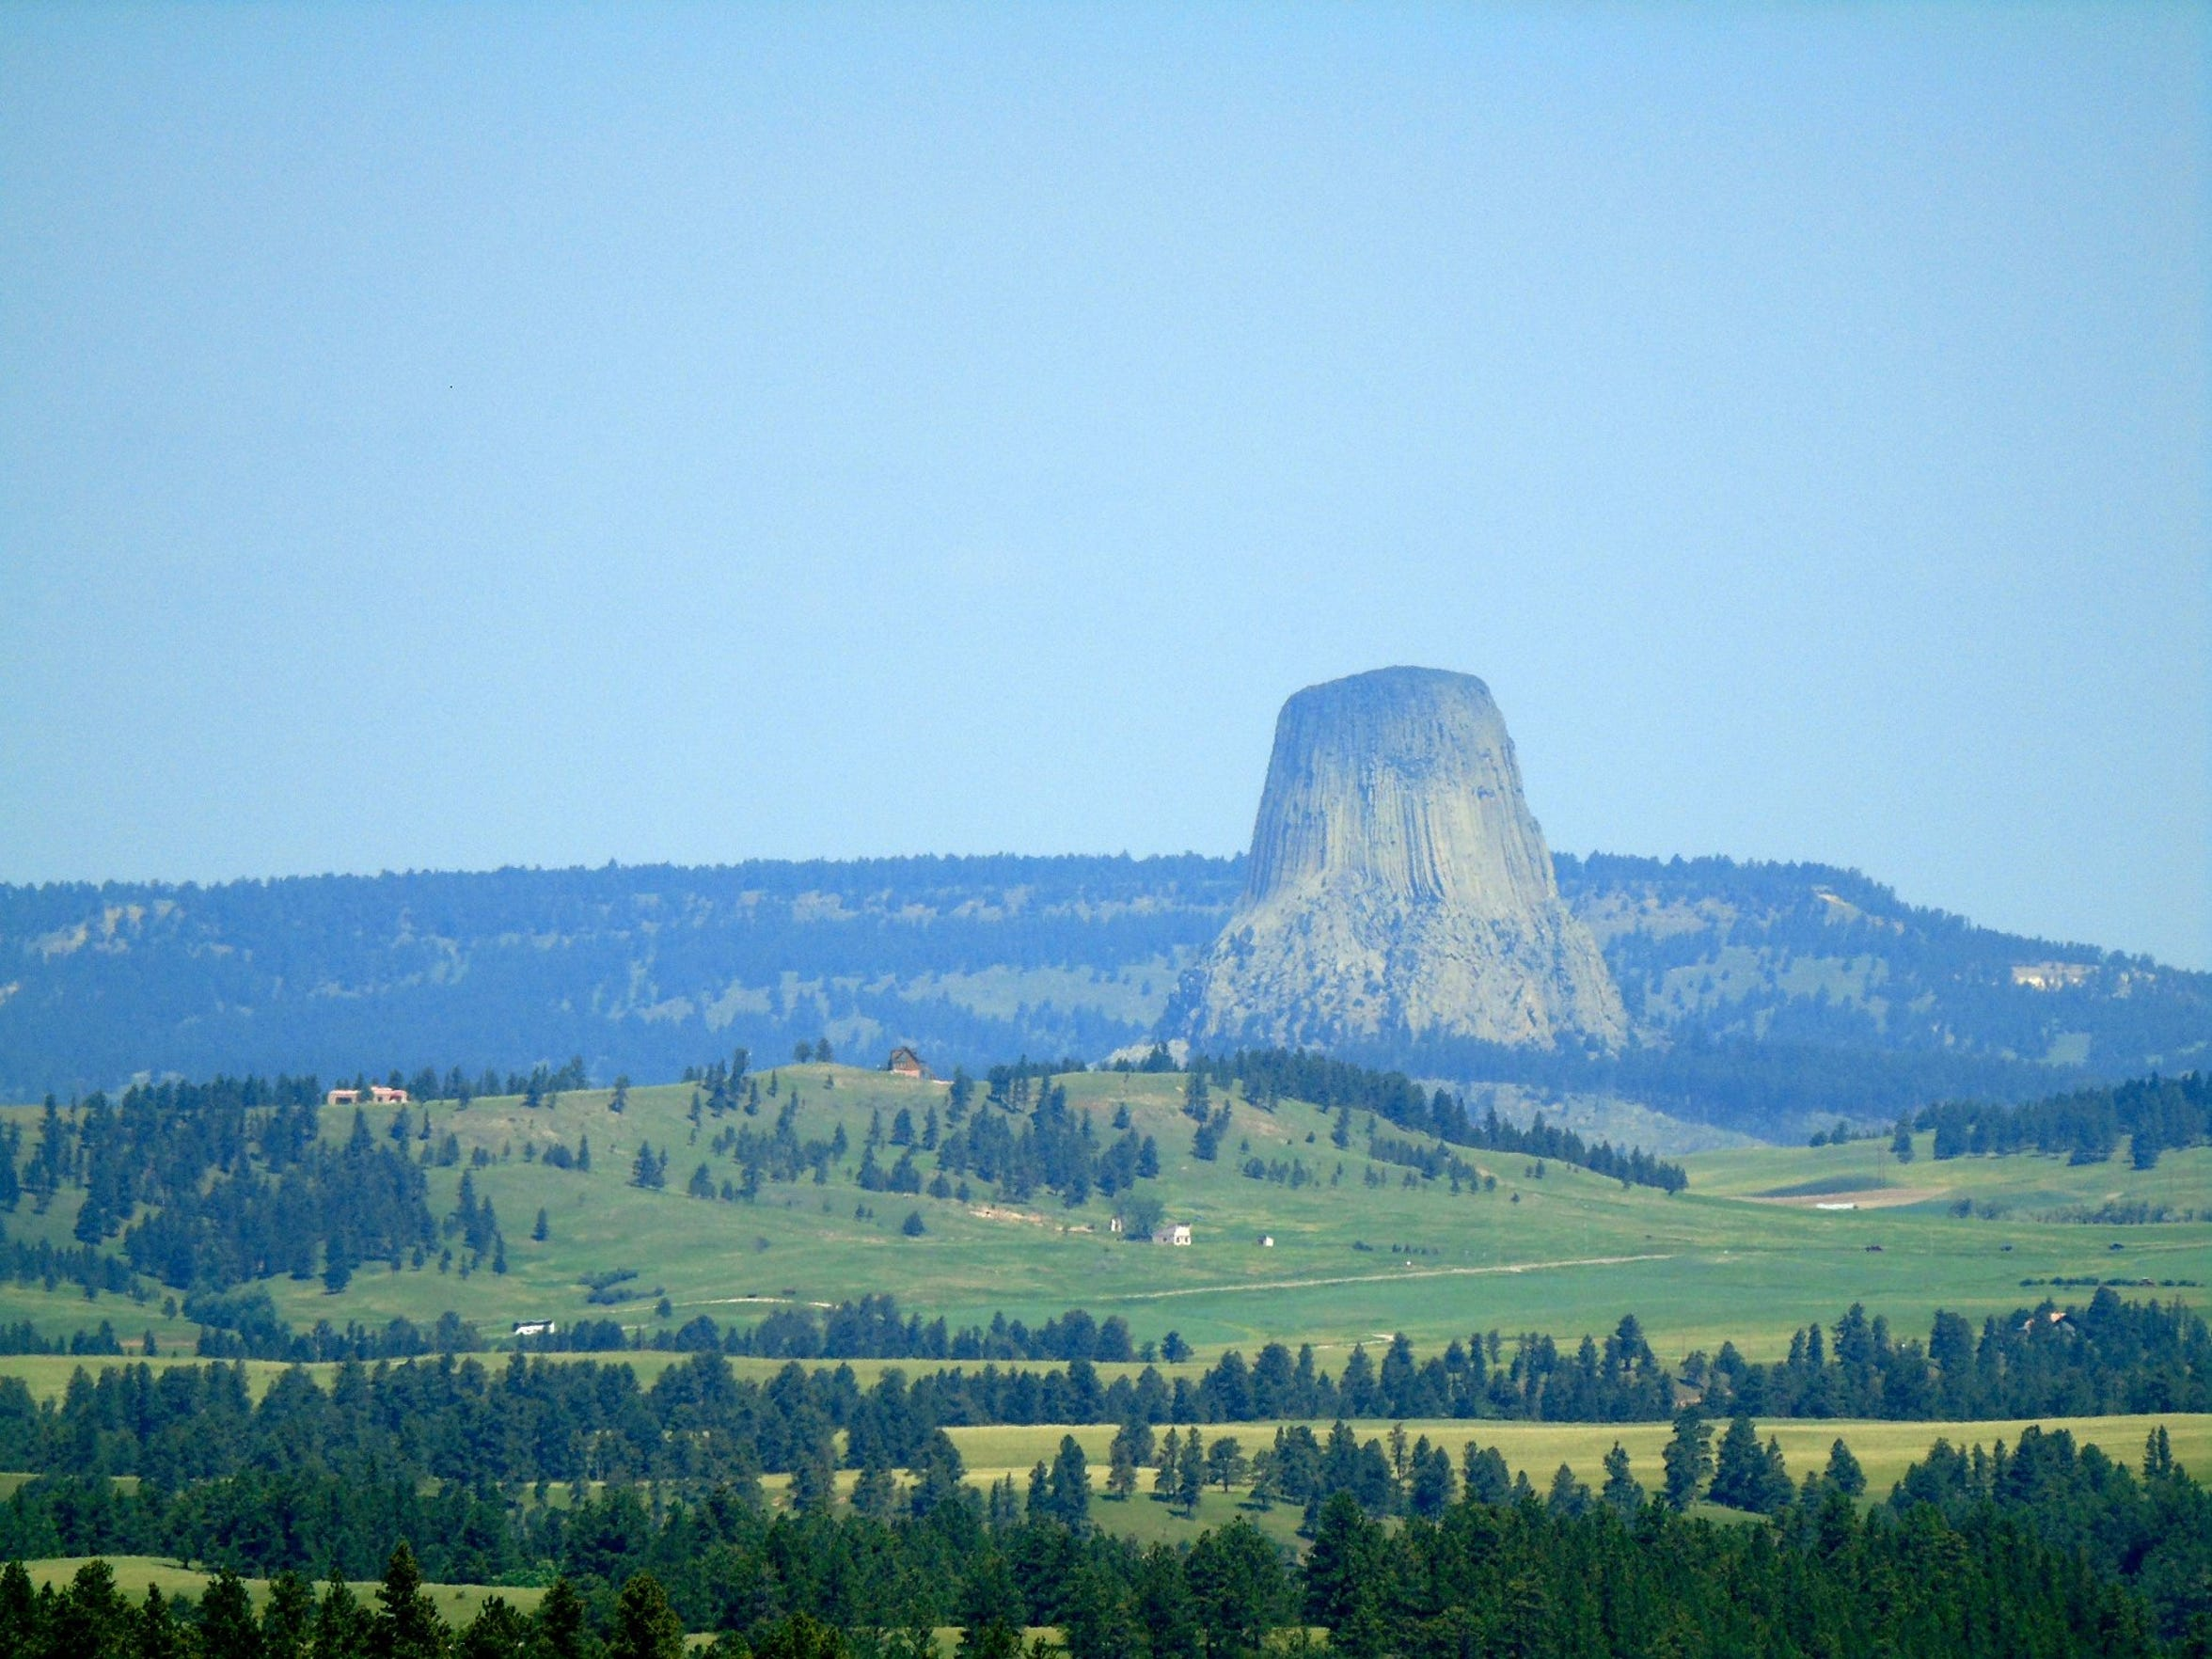 If you've gone all that way, you might as well see the Devils Tower National Monument in Wyoming.